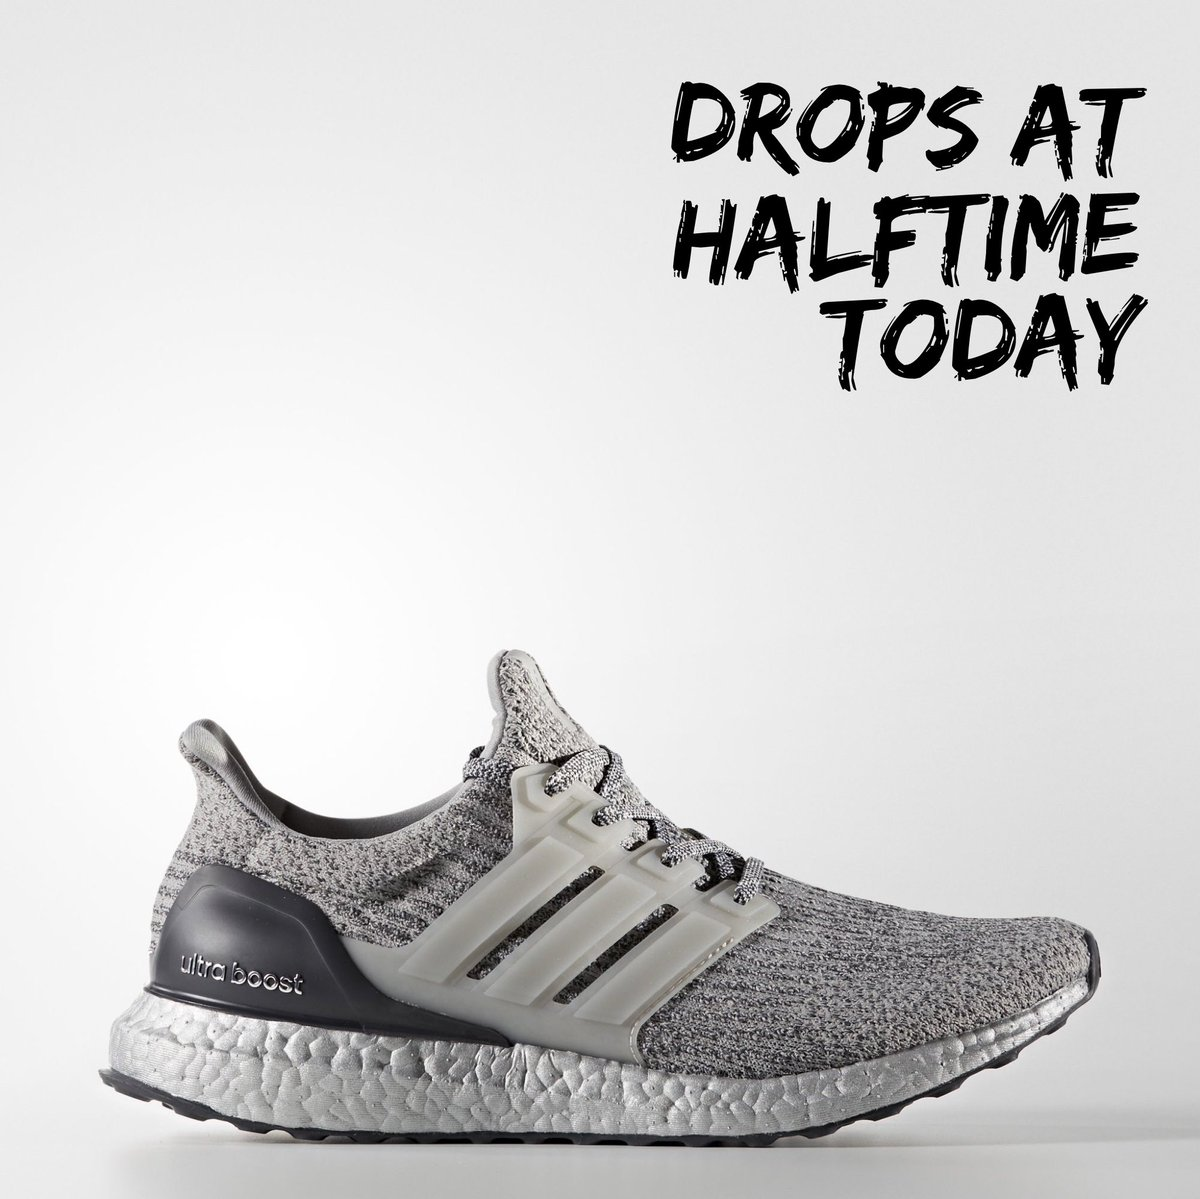 Details about Adidas Ultra Boost Uncaged 3.0 Super Bowl Edition Silver Pack Grey BA7997